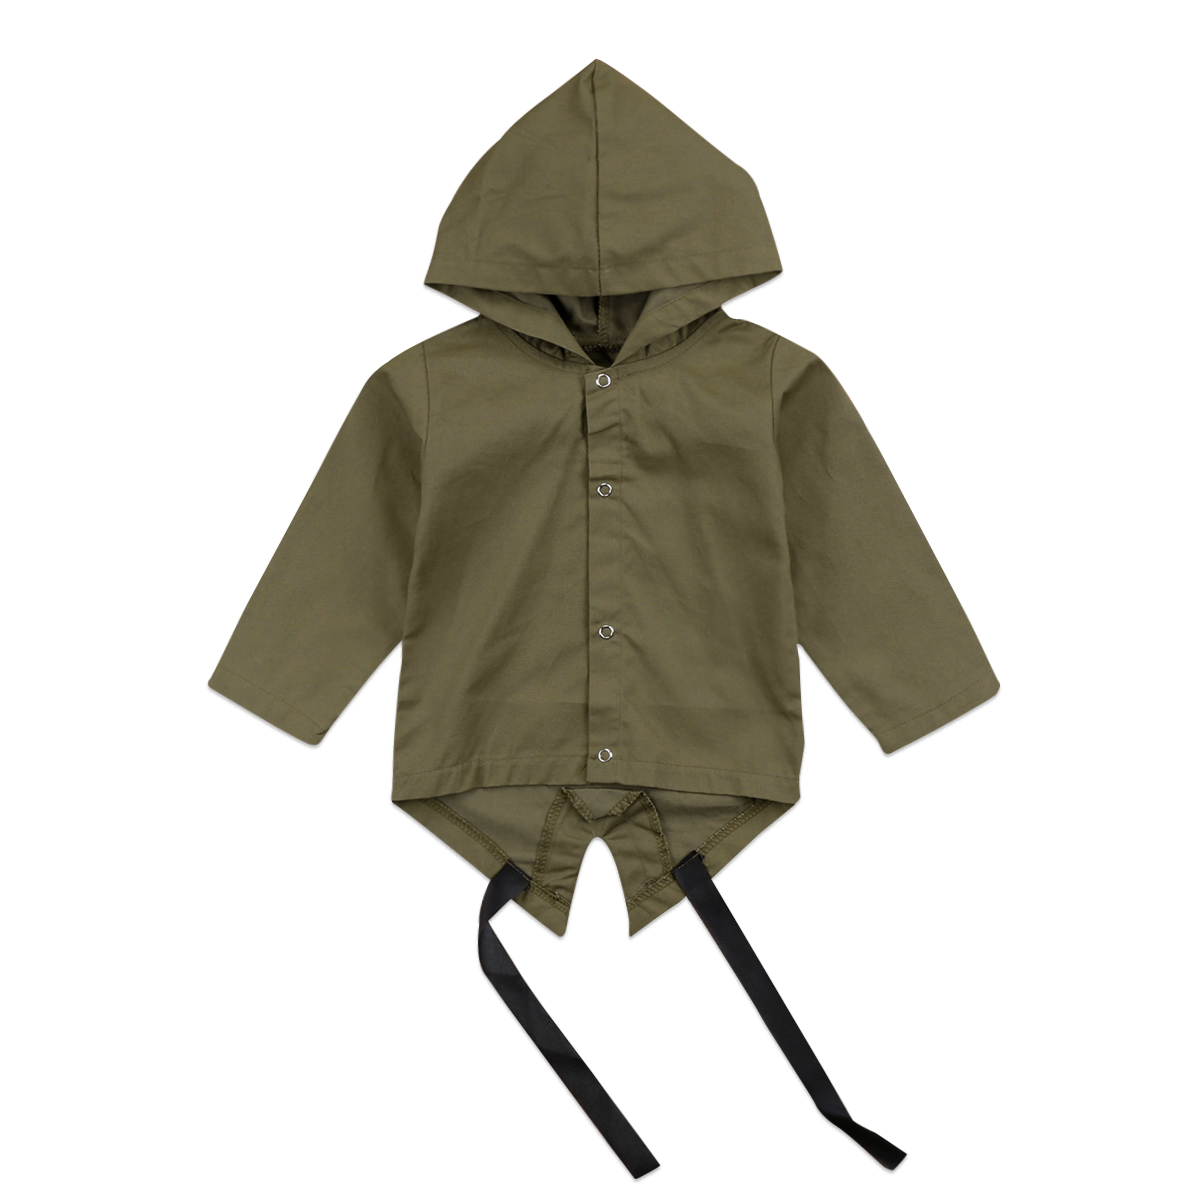 Hot Sale Unisex Newborn Baby Boys Girls Kids Long Sleeve Coat Toddler Hooded Outerwear Jacket new одежда на маленьких мальчиков